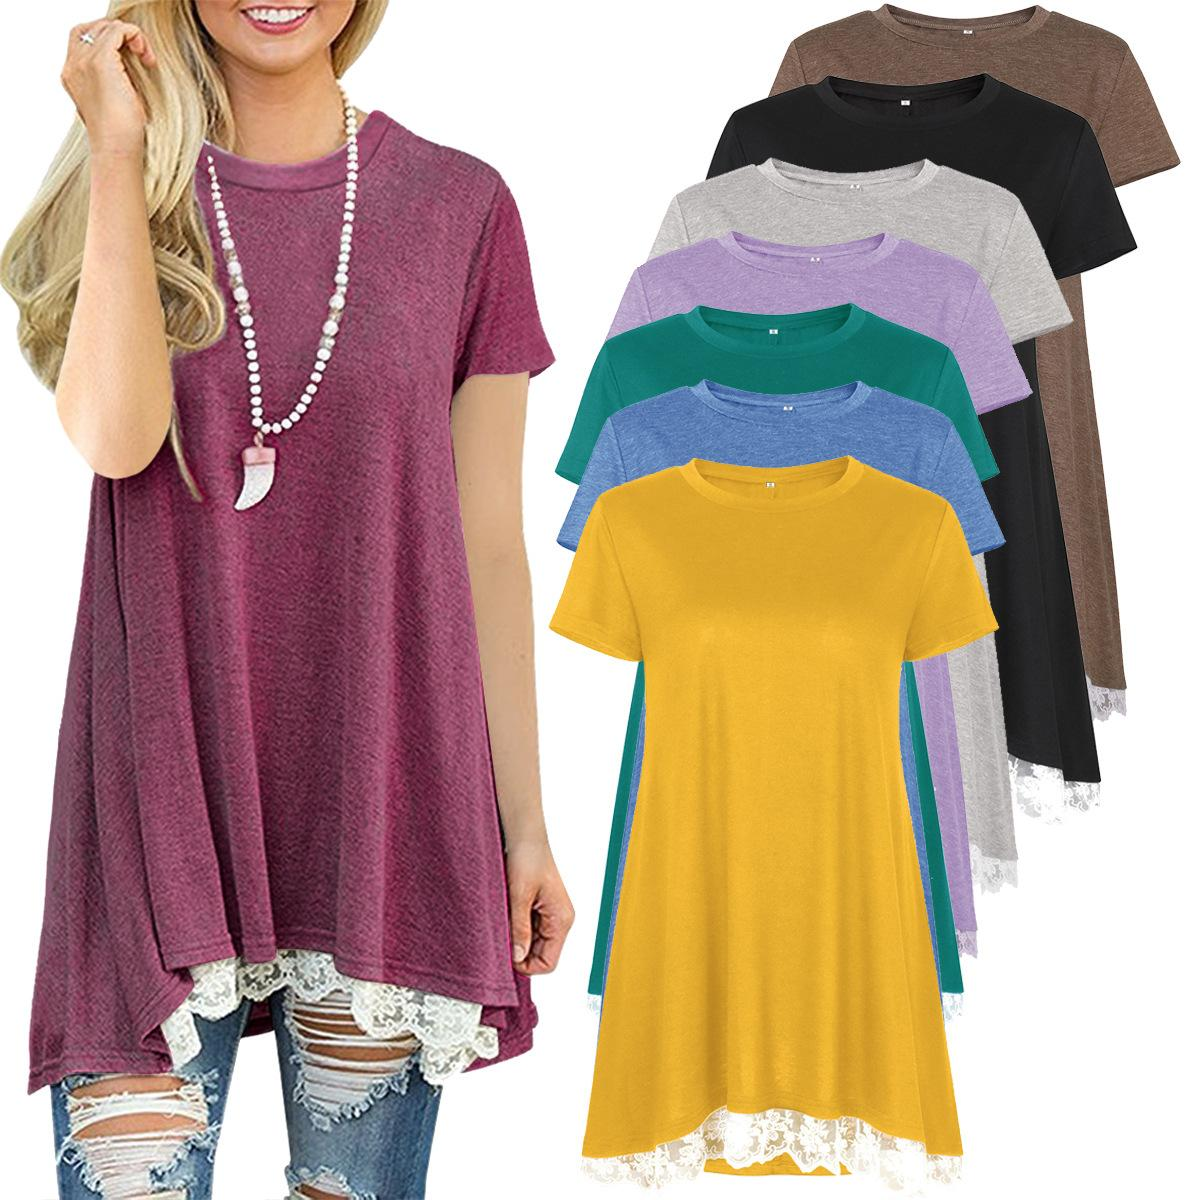 Women's Lace Short Sleeve Tunic Tops Blouse Round Neck A-Line Flowy Shirt Tunic Tops For Leggings AM135